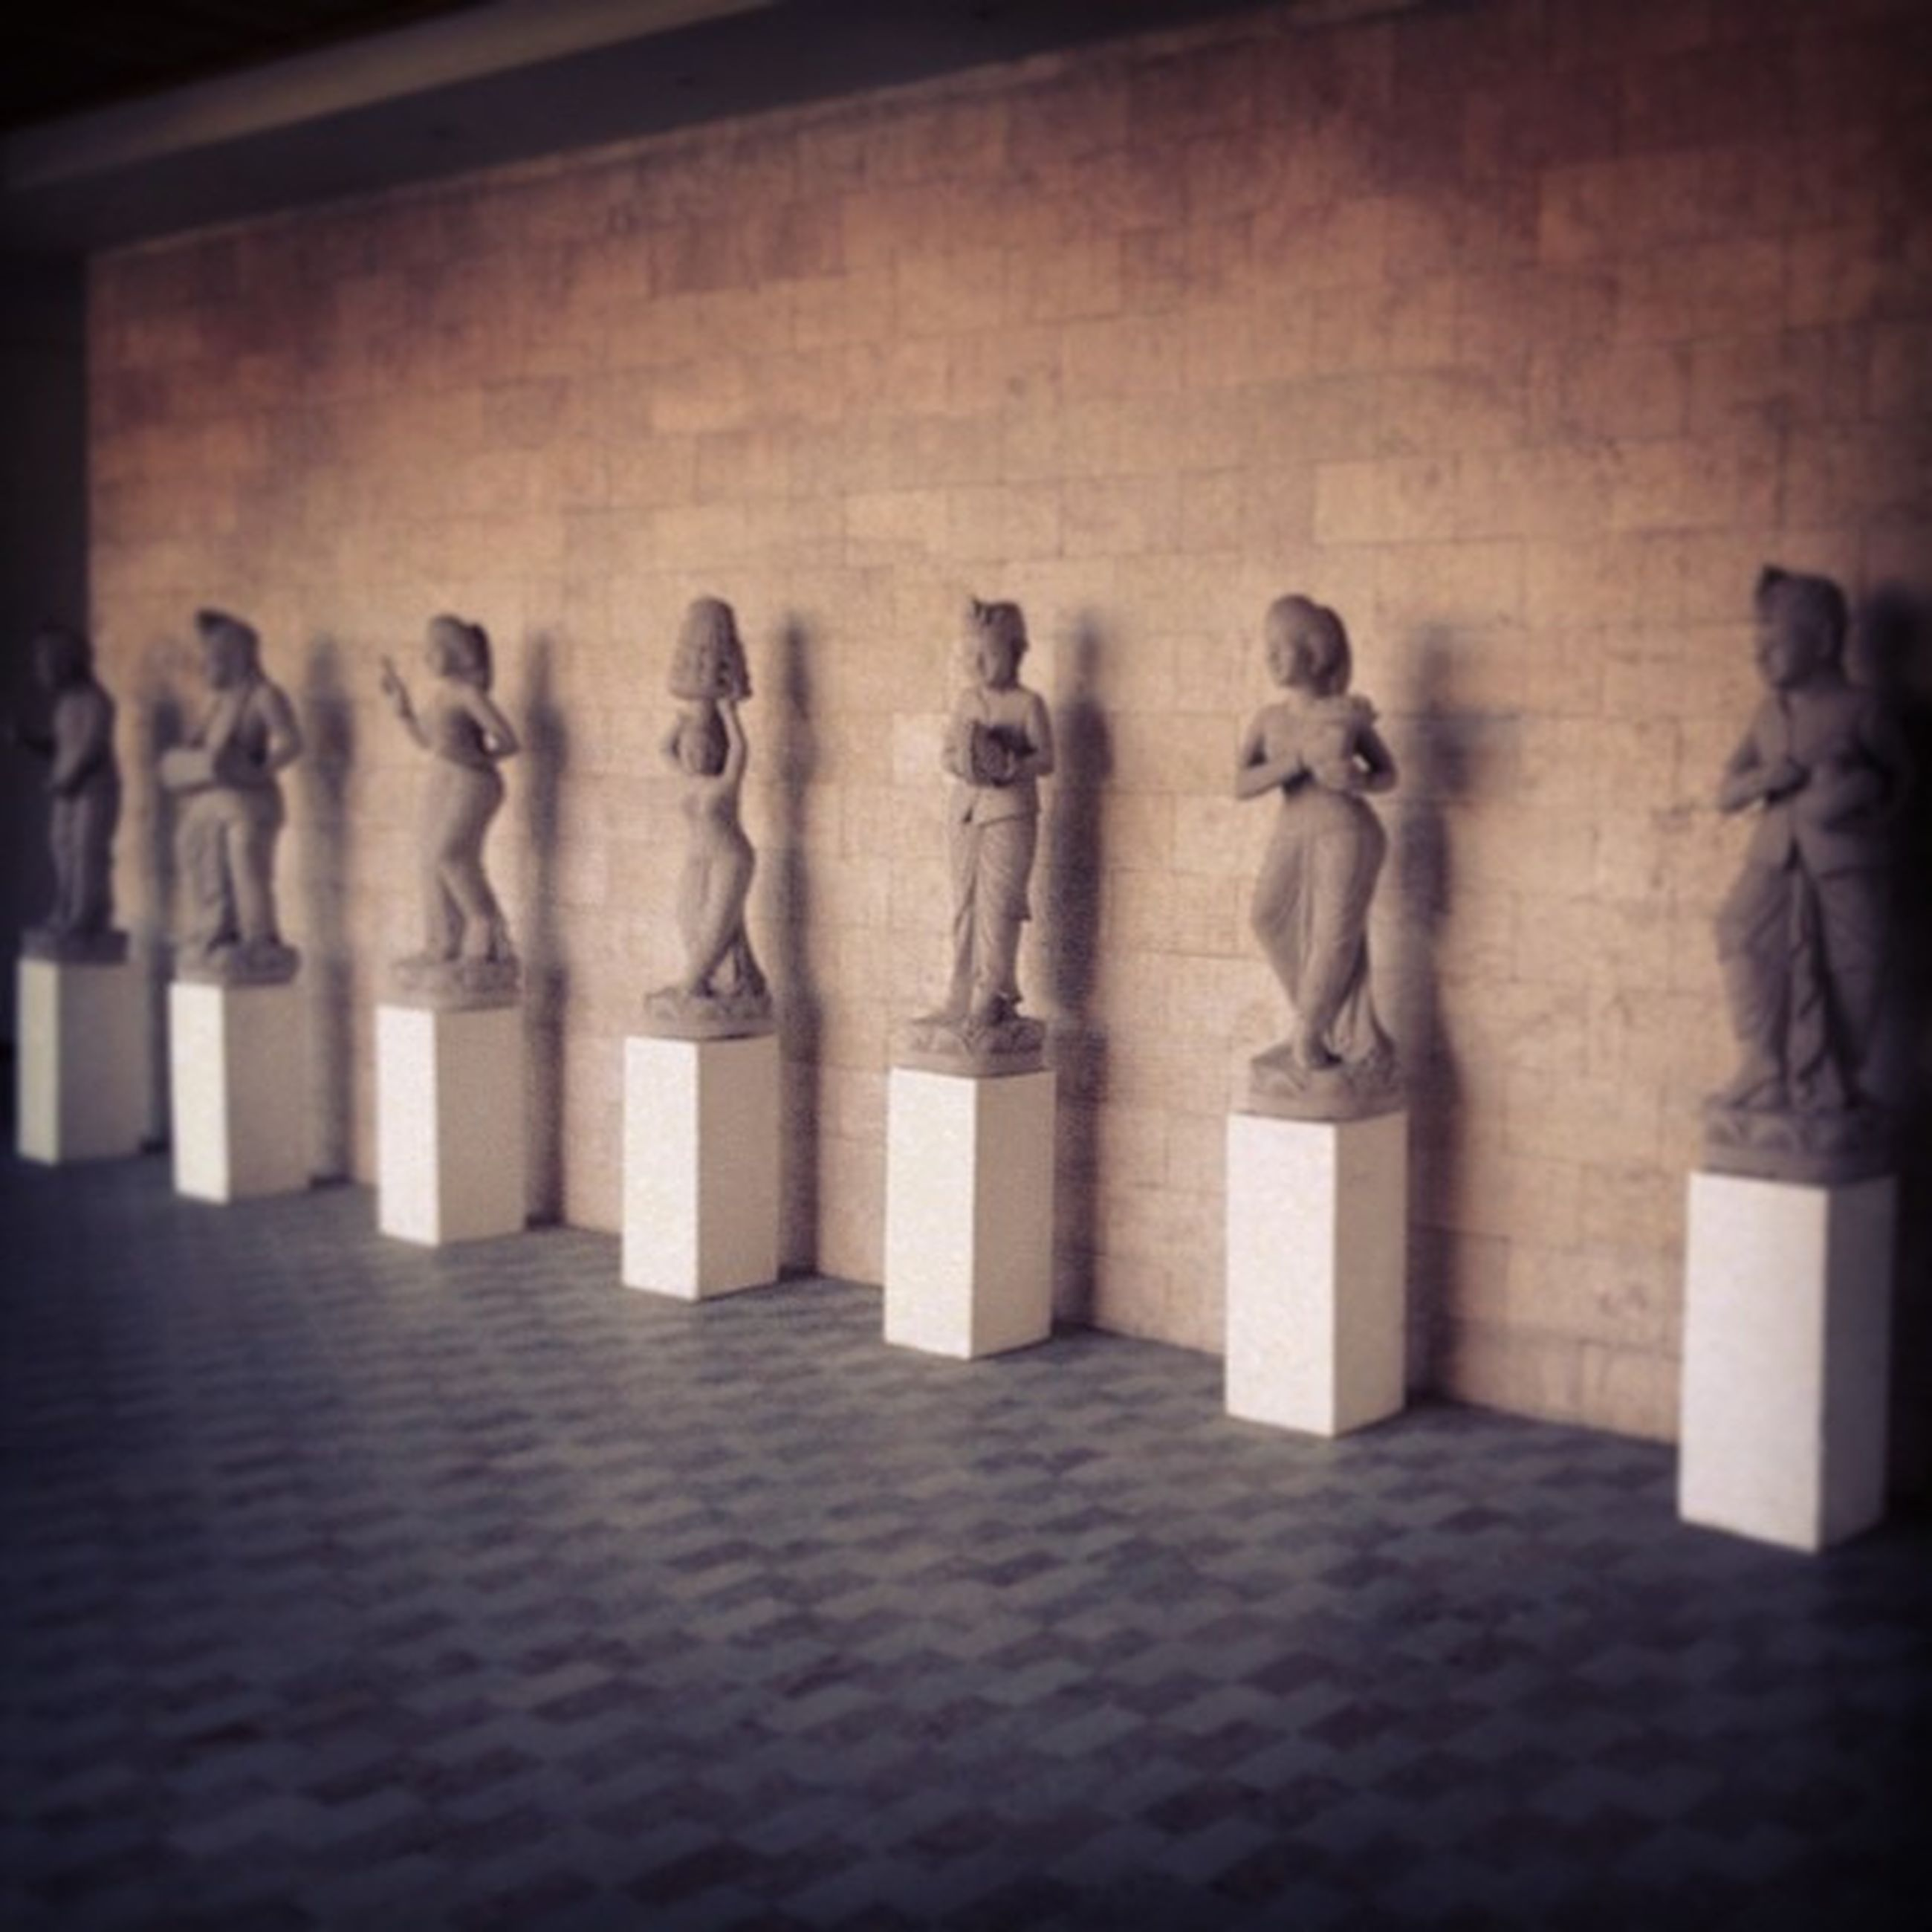 art and craft, art, human representation, creativity, statue, sculpture, in a row, carving - craft product, indoors, animal representation, history, craft, built structure, architecture, side by side, no people, wall - building feature, day